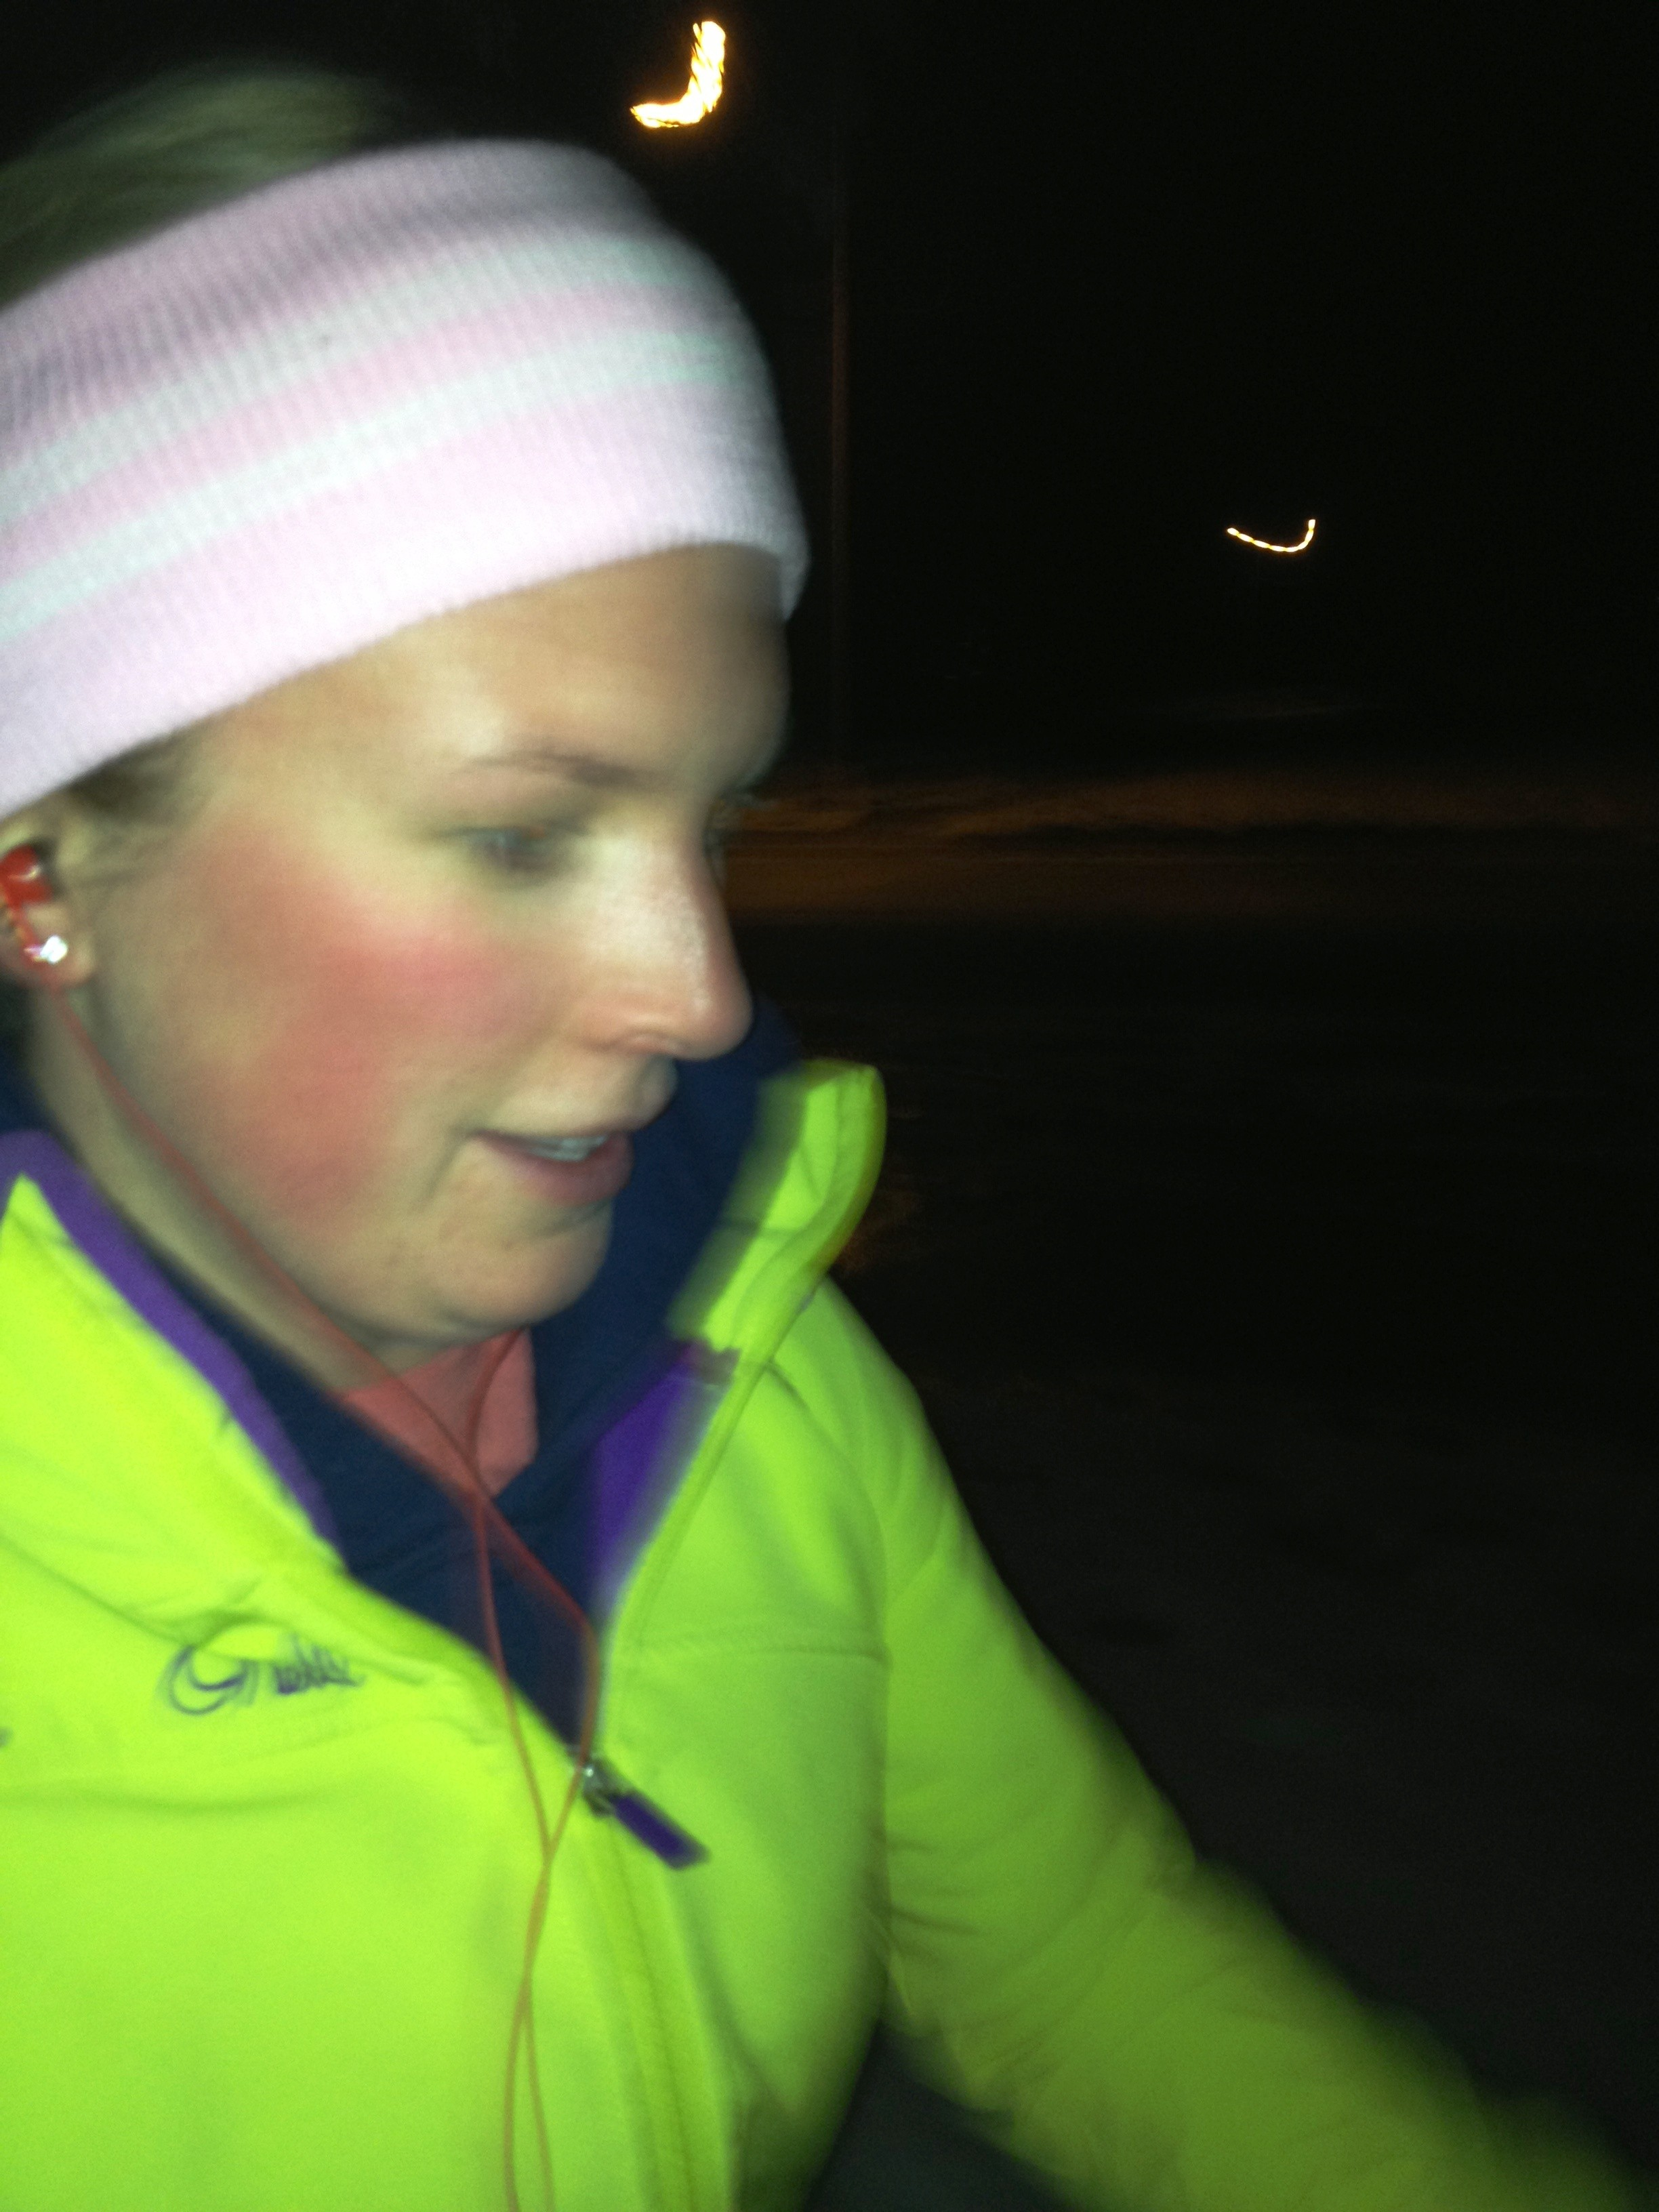 My blurry running pic